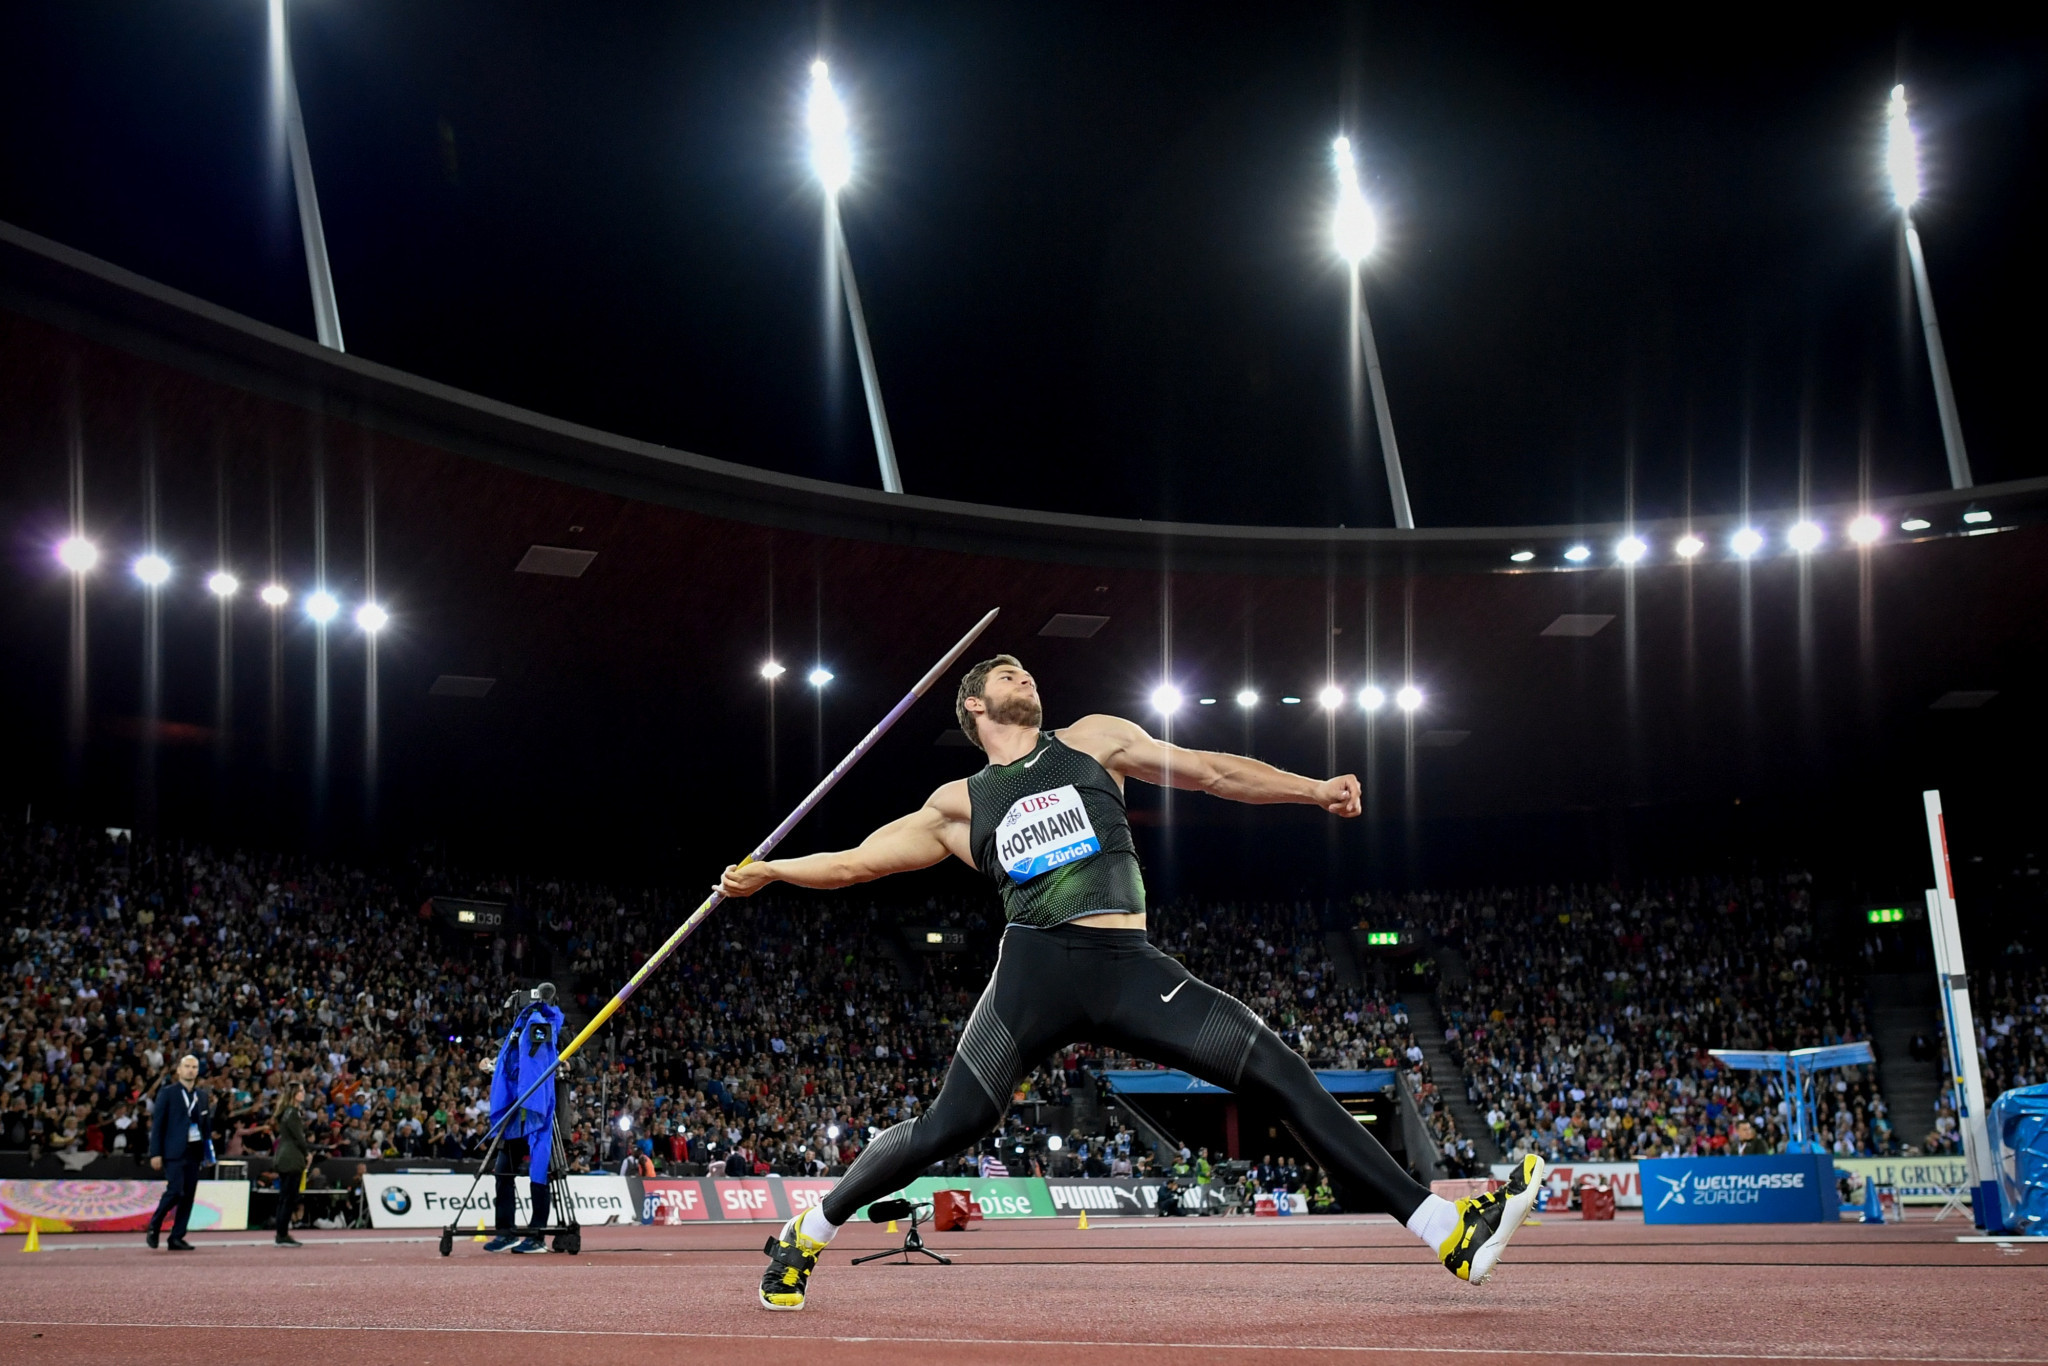 Weltklasse Zurich will host the International Association of Athletics Federations Diamond League Final in 2020 and 2021 ©Getty Images